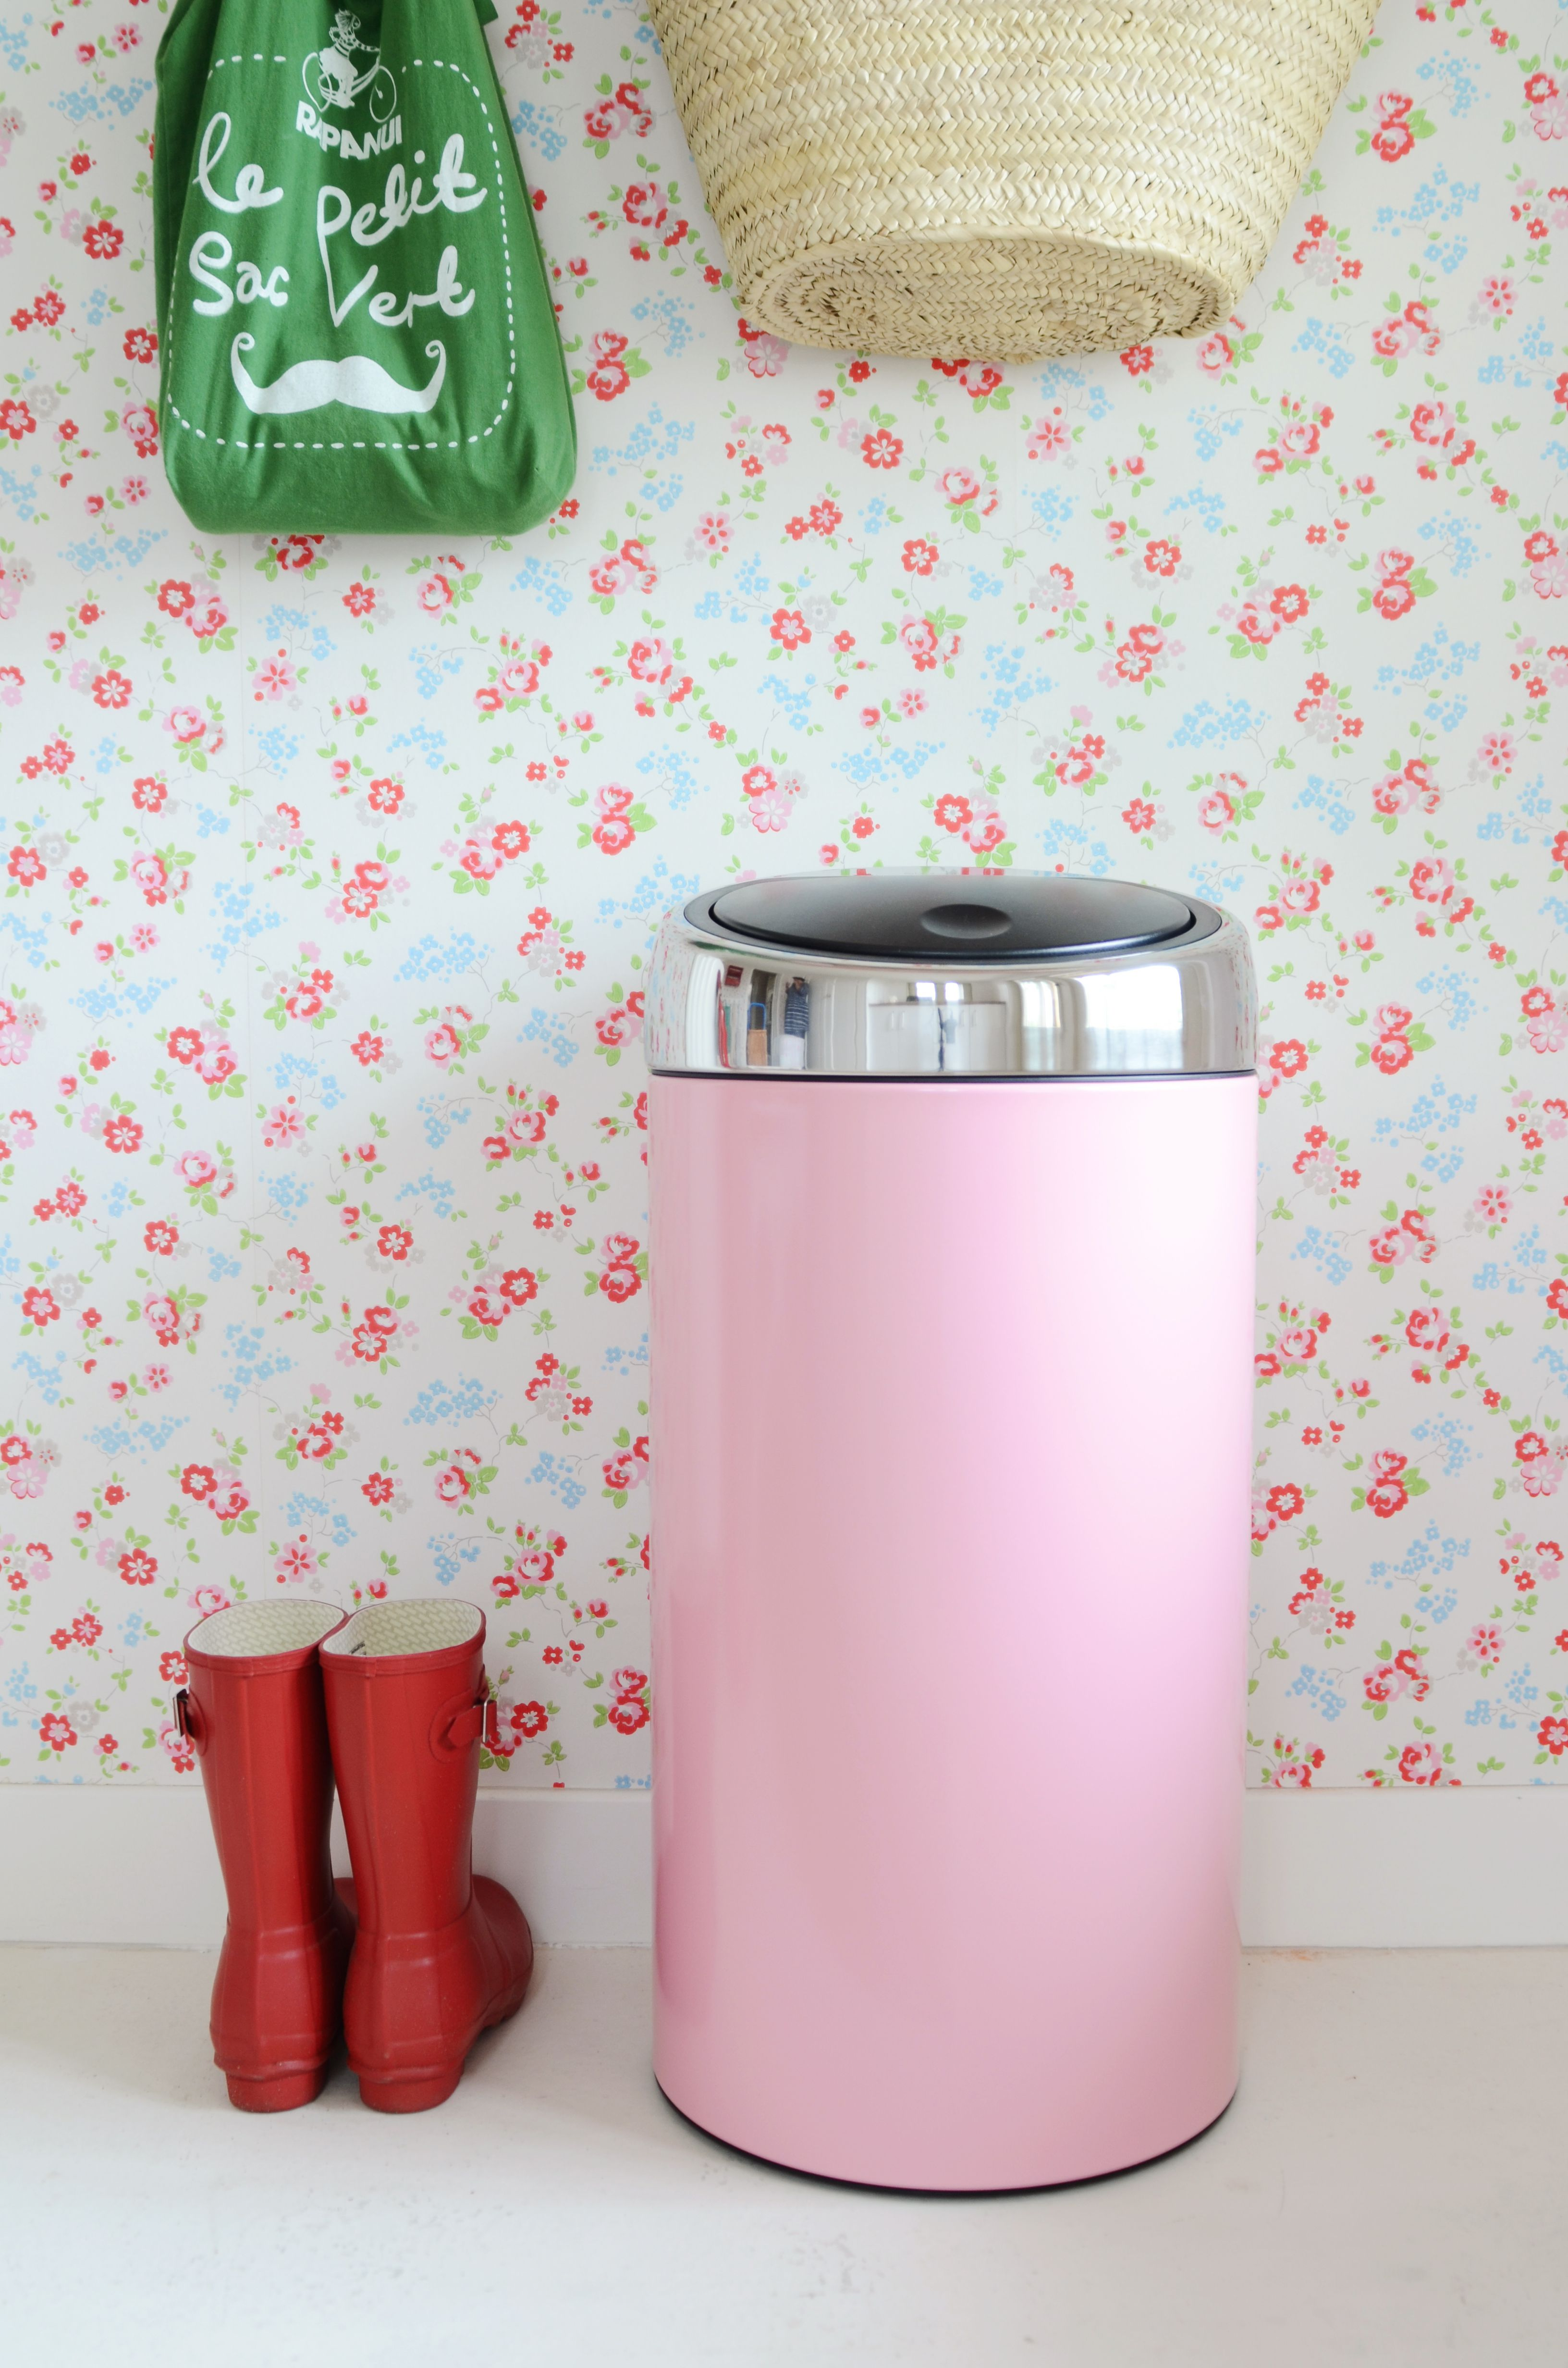 Brabantia Prullenbak Roze.Pink Brabantia Touch Bin Is This A Garbage Can I Def Want A Pink